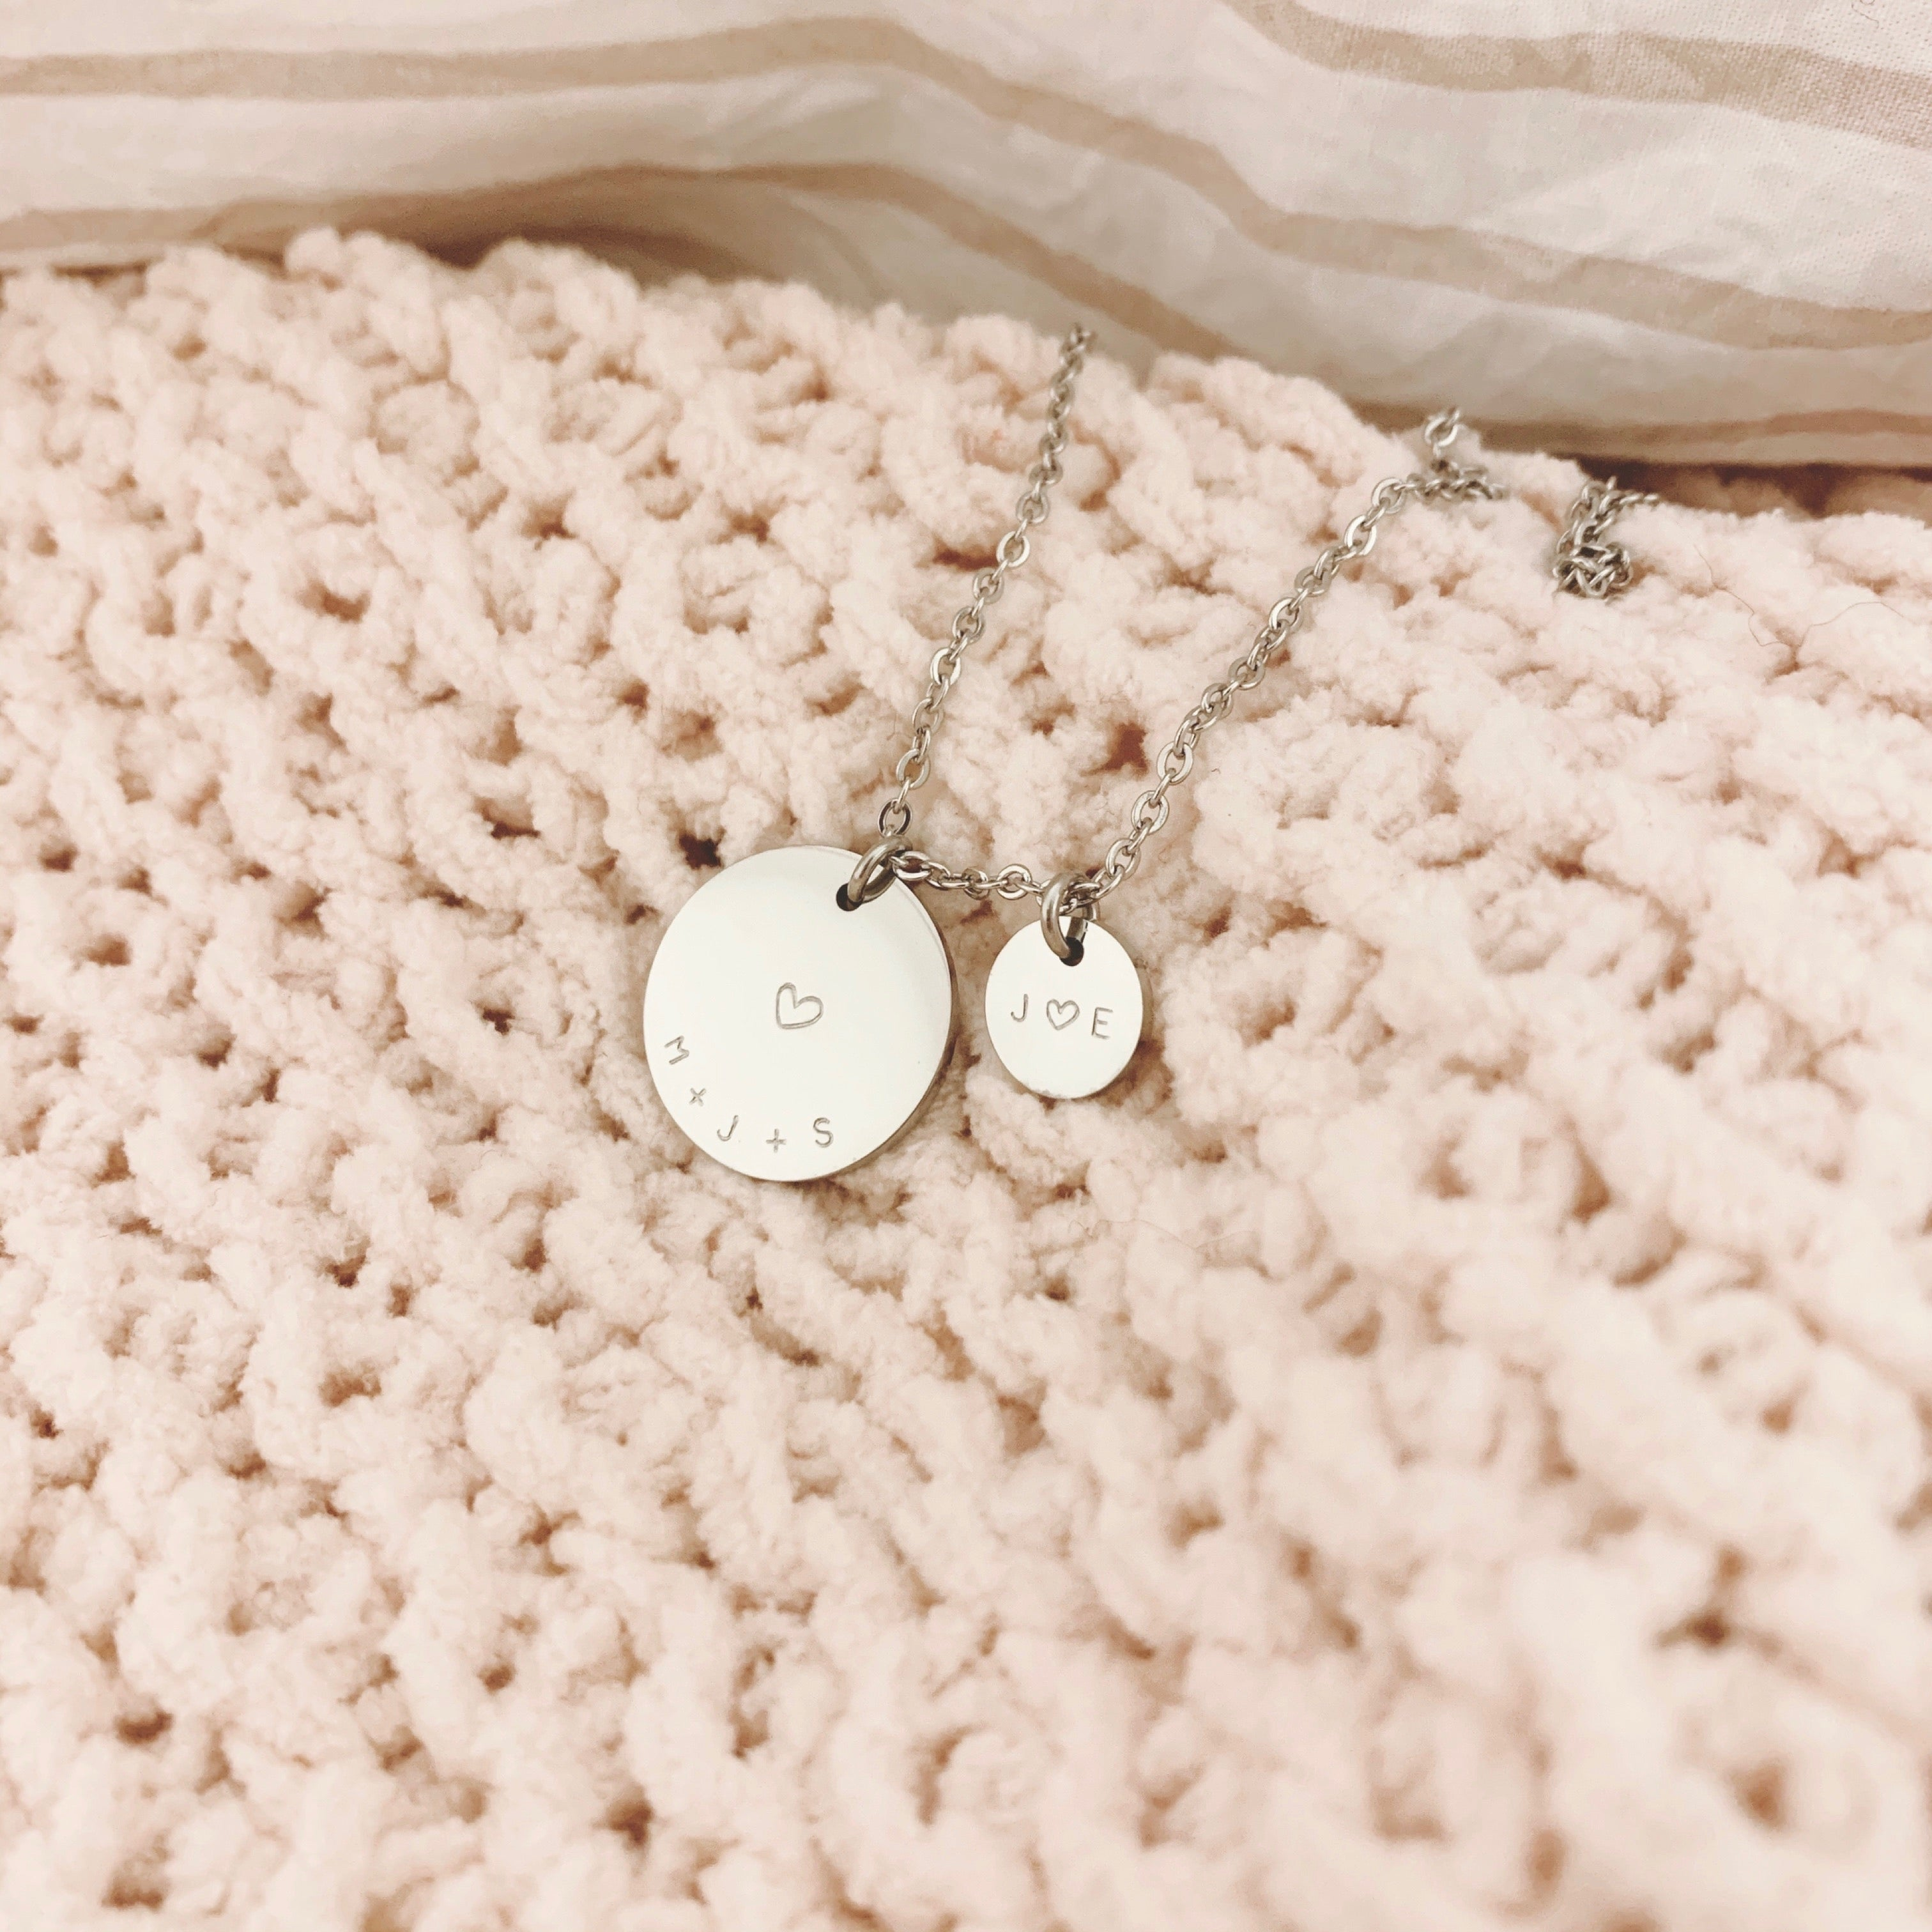 Large Disc + Small Disc Necklace